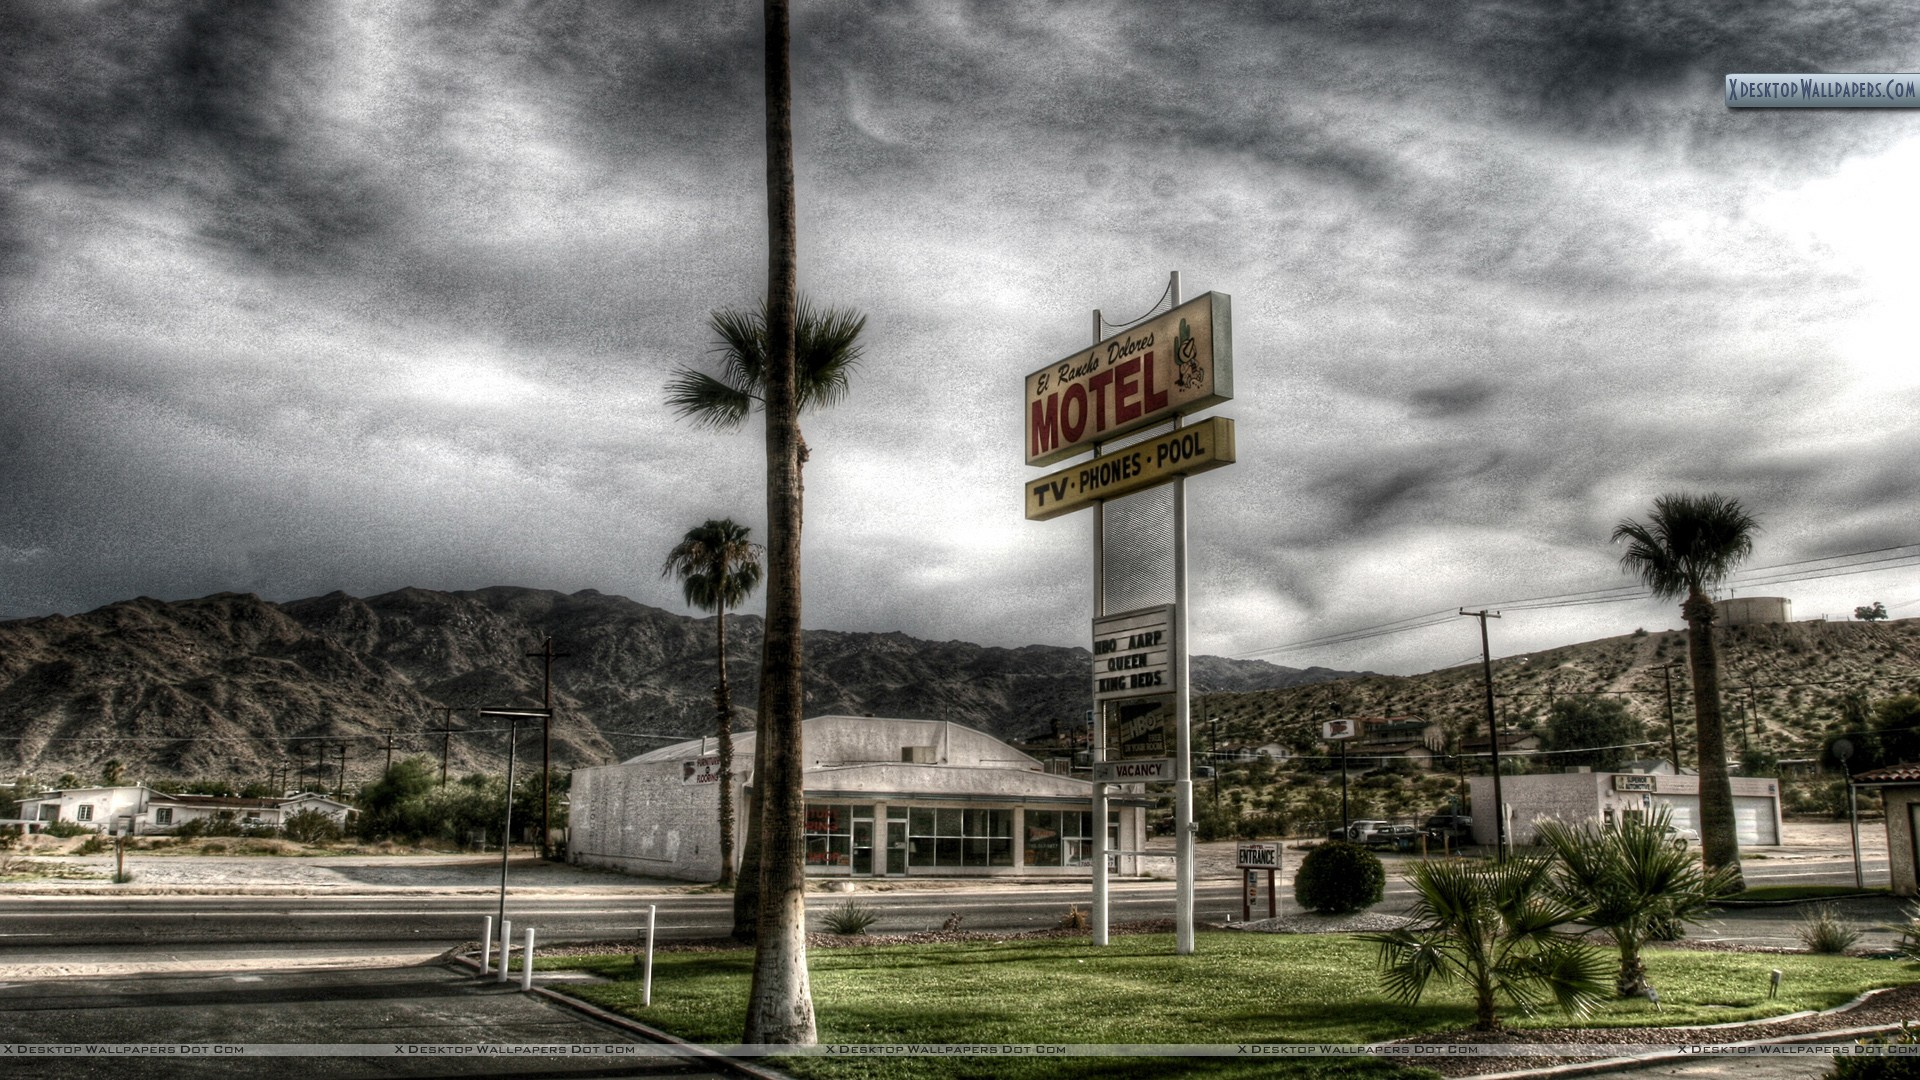 A Motel At Highway Wallpaper